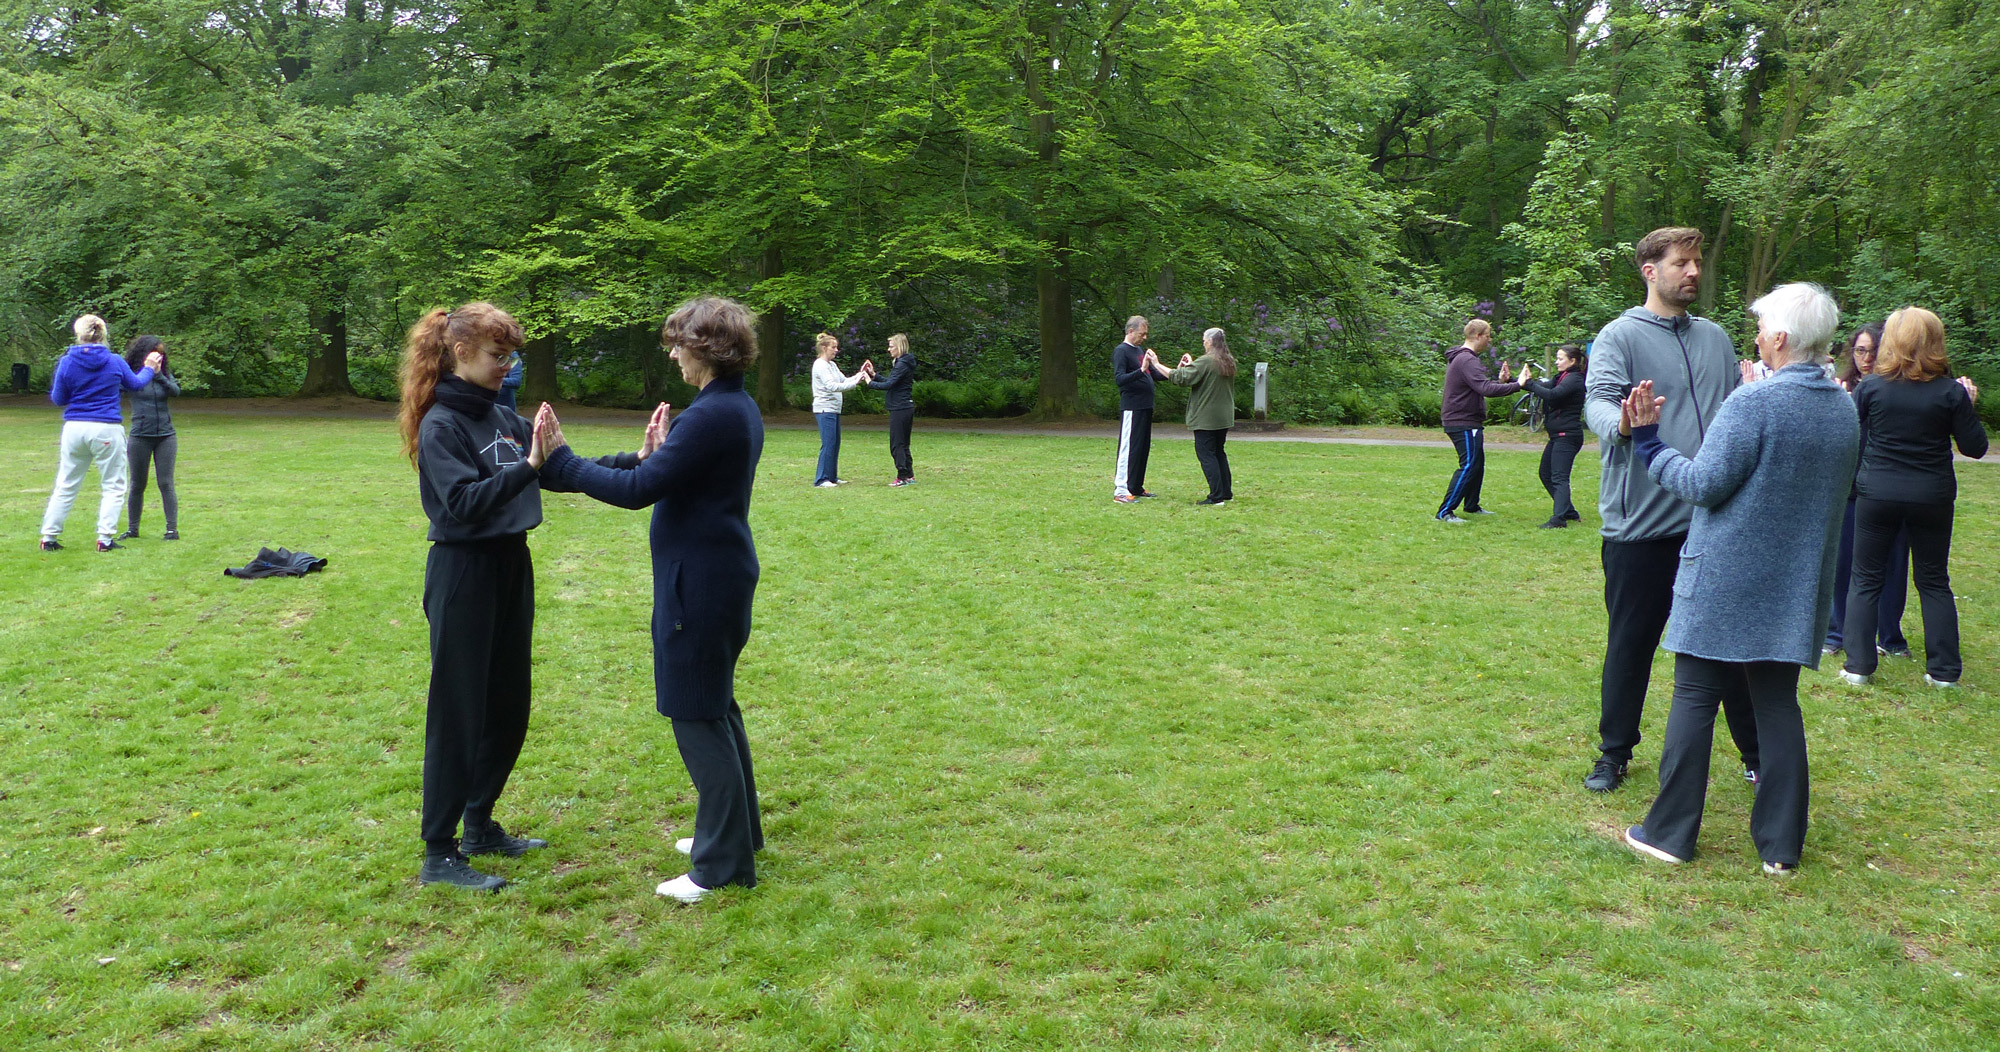 Ron wiggers qigong instructeur opleiding dag instructor day